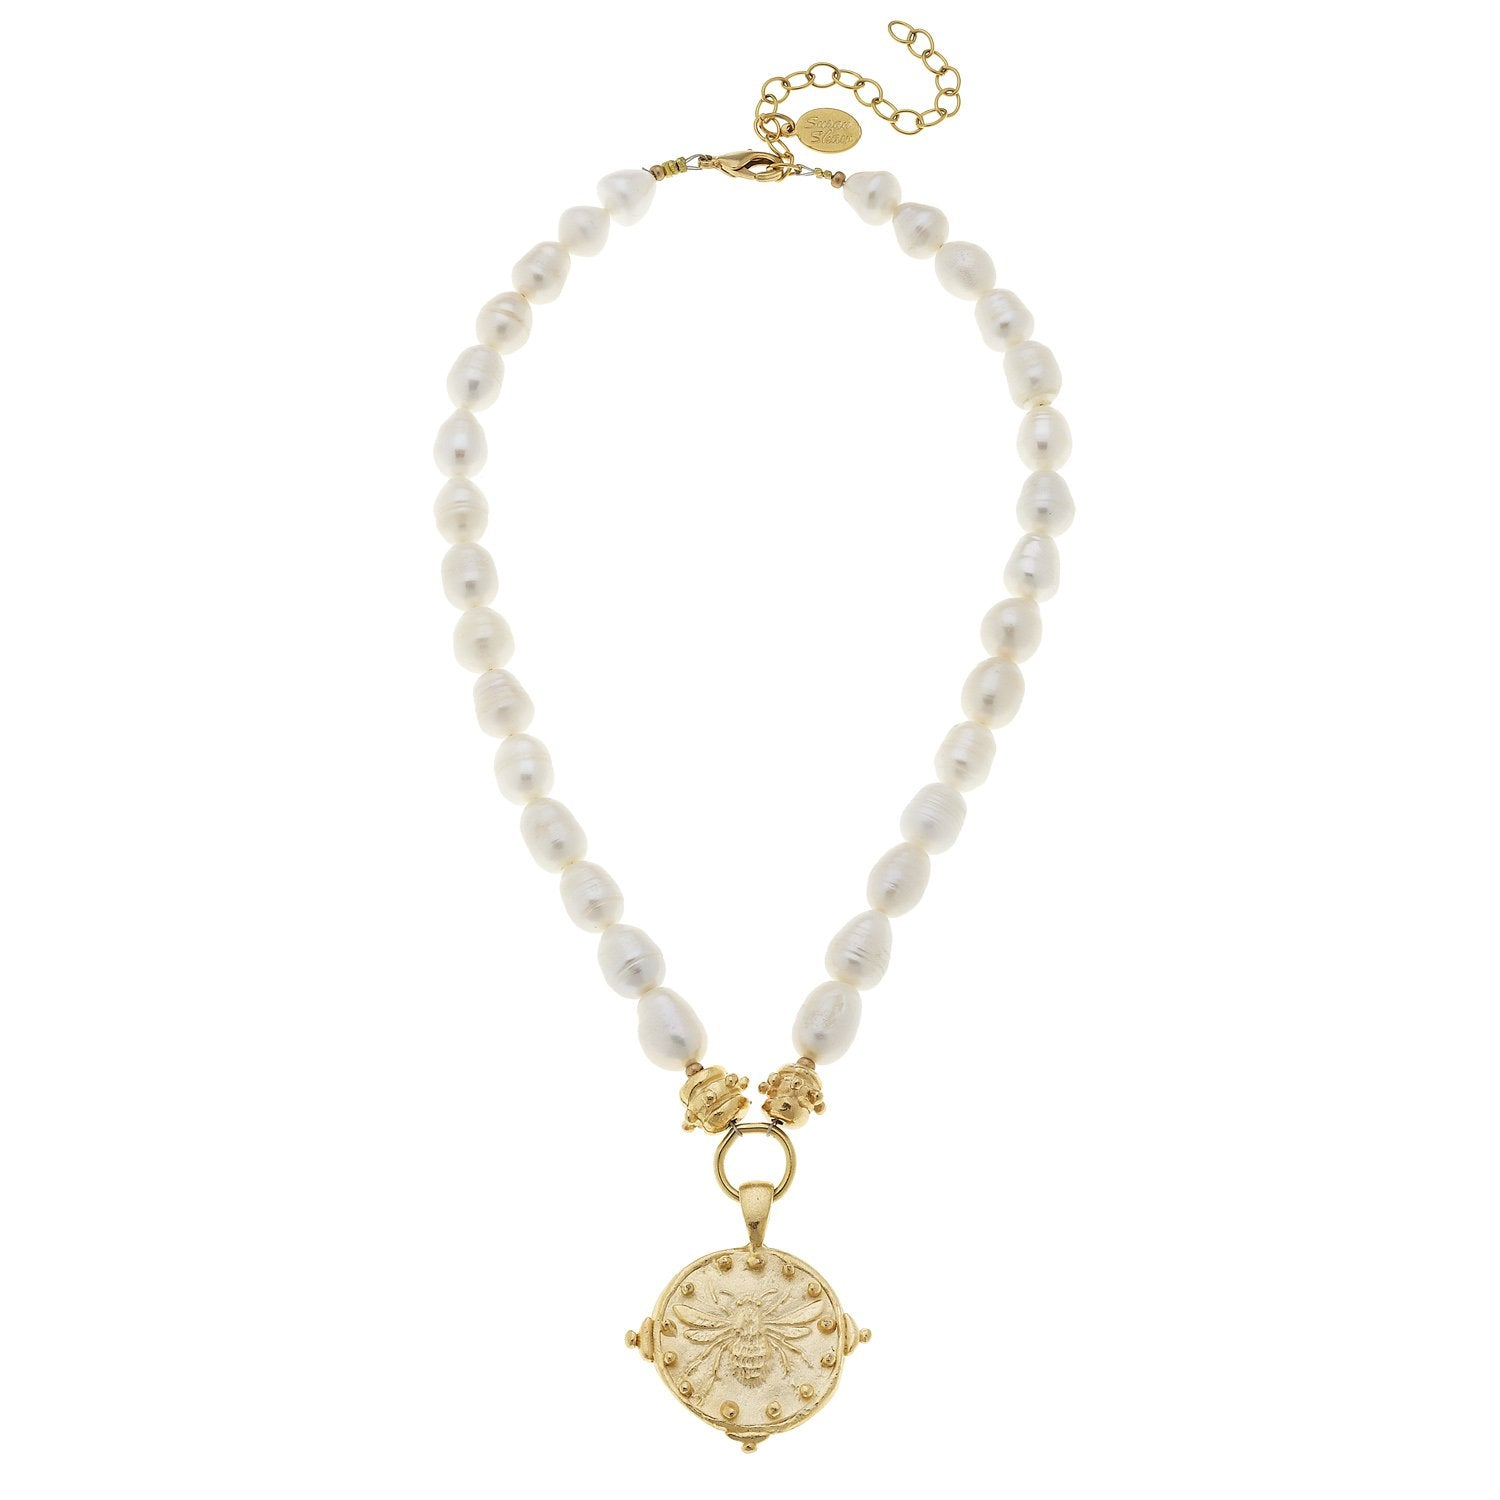 Susan Shaw Bee Pendant on Genuine Freshwater Pearl Necklace - Gold